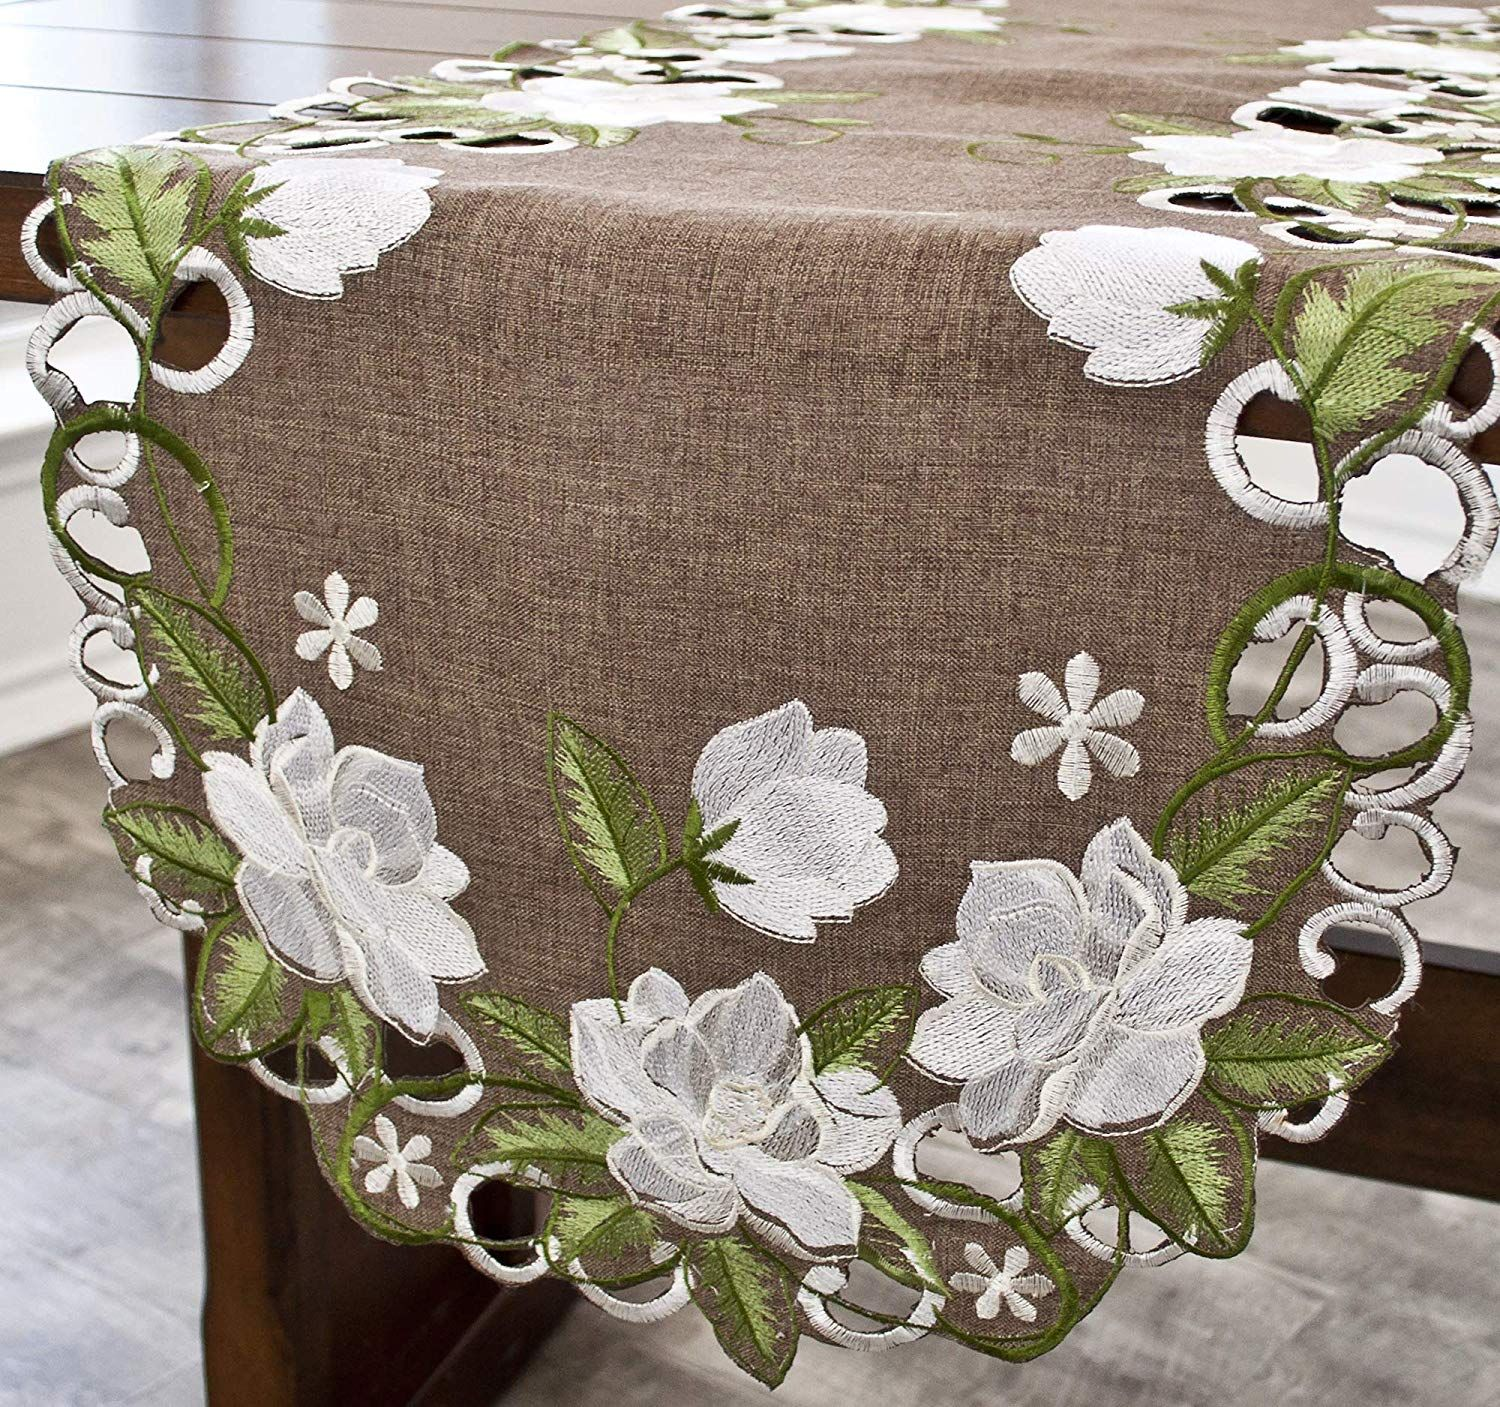 Decor Embroidered White Magnolia Floral Design Table Runner